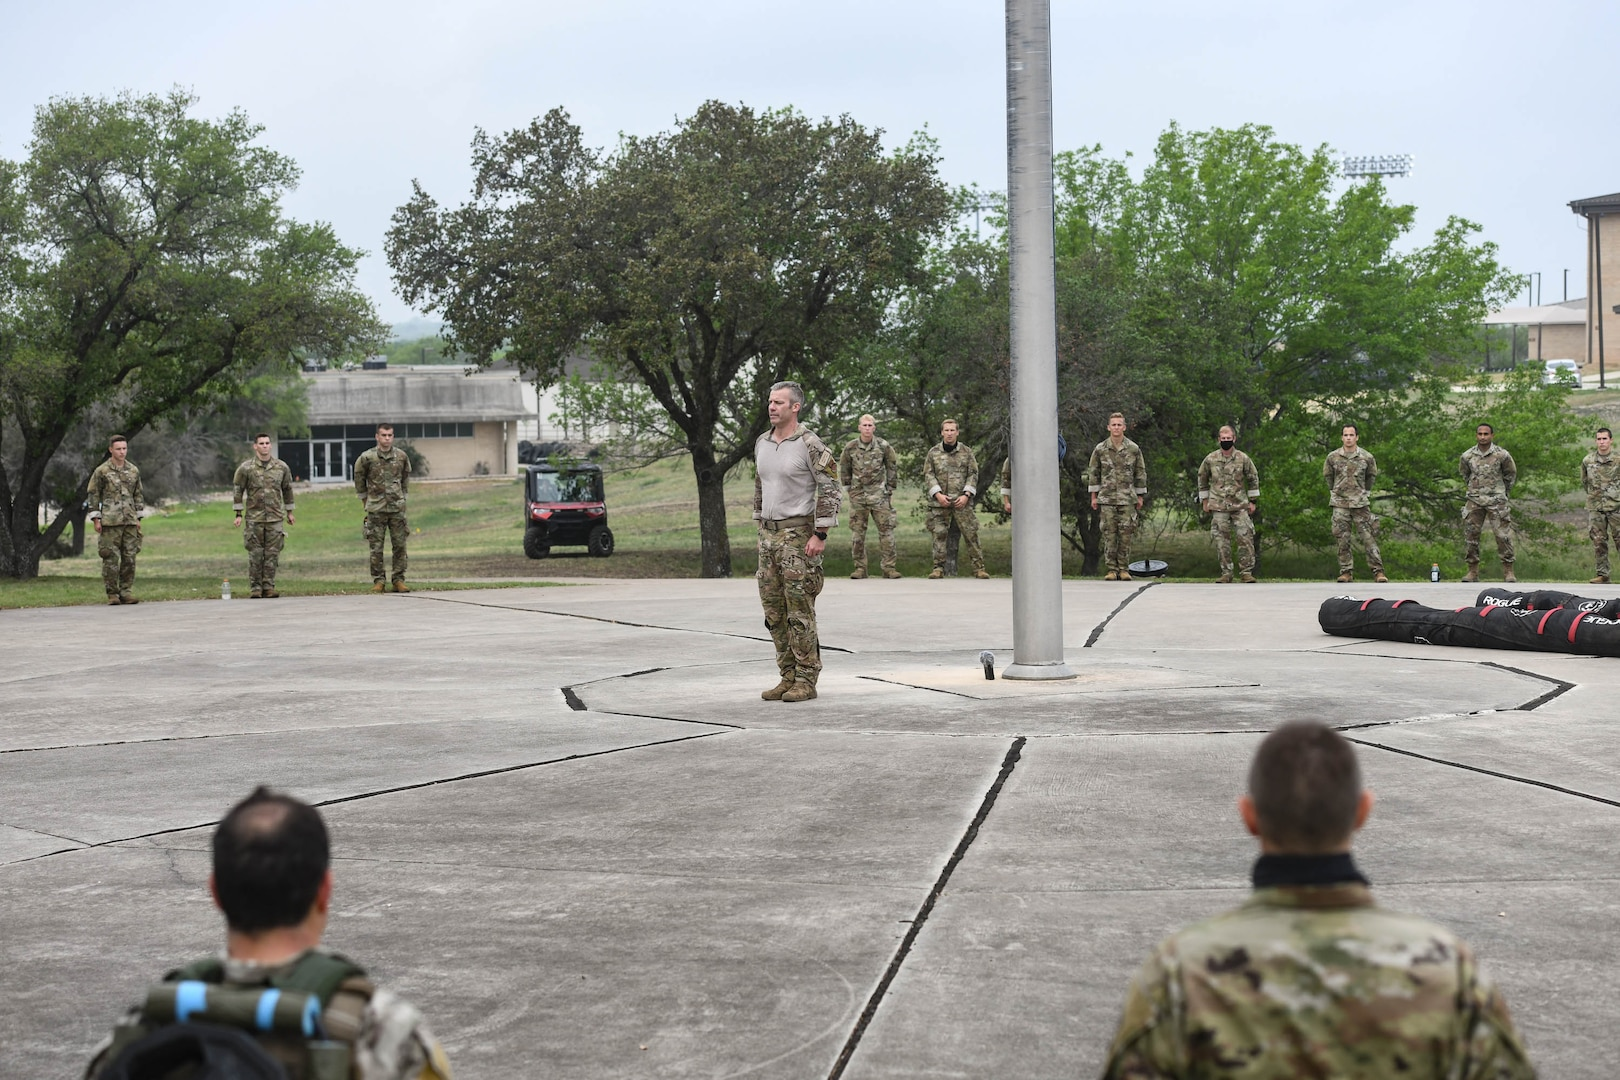 JOINT BASE SAN ANTONIO-CHAPMAN TRAINING ANNEX, Texas—Chief Master Sgt. Todd M. Popovic, Special Warfare Training Wing, or SWTW, command chief, leads a formation in memorial pushups after a memorial log carry for fallen airman, Lt. Col. William Schroeder, at the SWTW located on Joint Base San Antonio-Chapman Training Annex, or JBSA-CTA, Apr. 8, 2021.